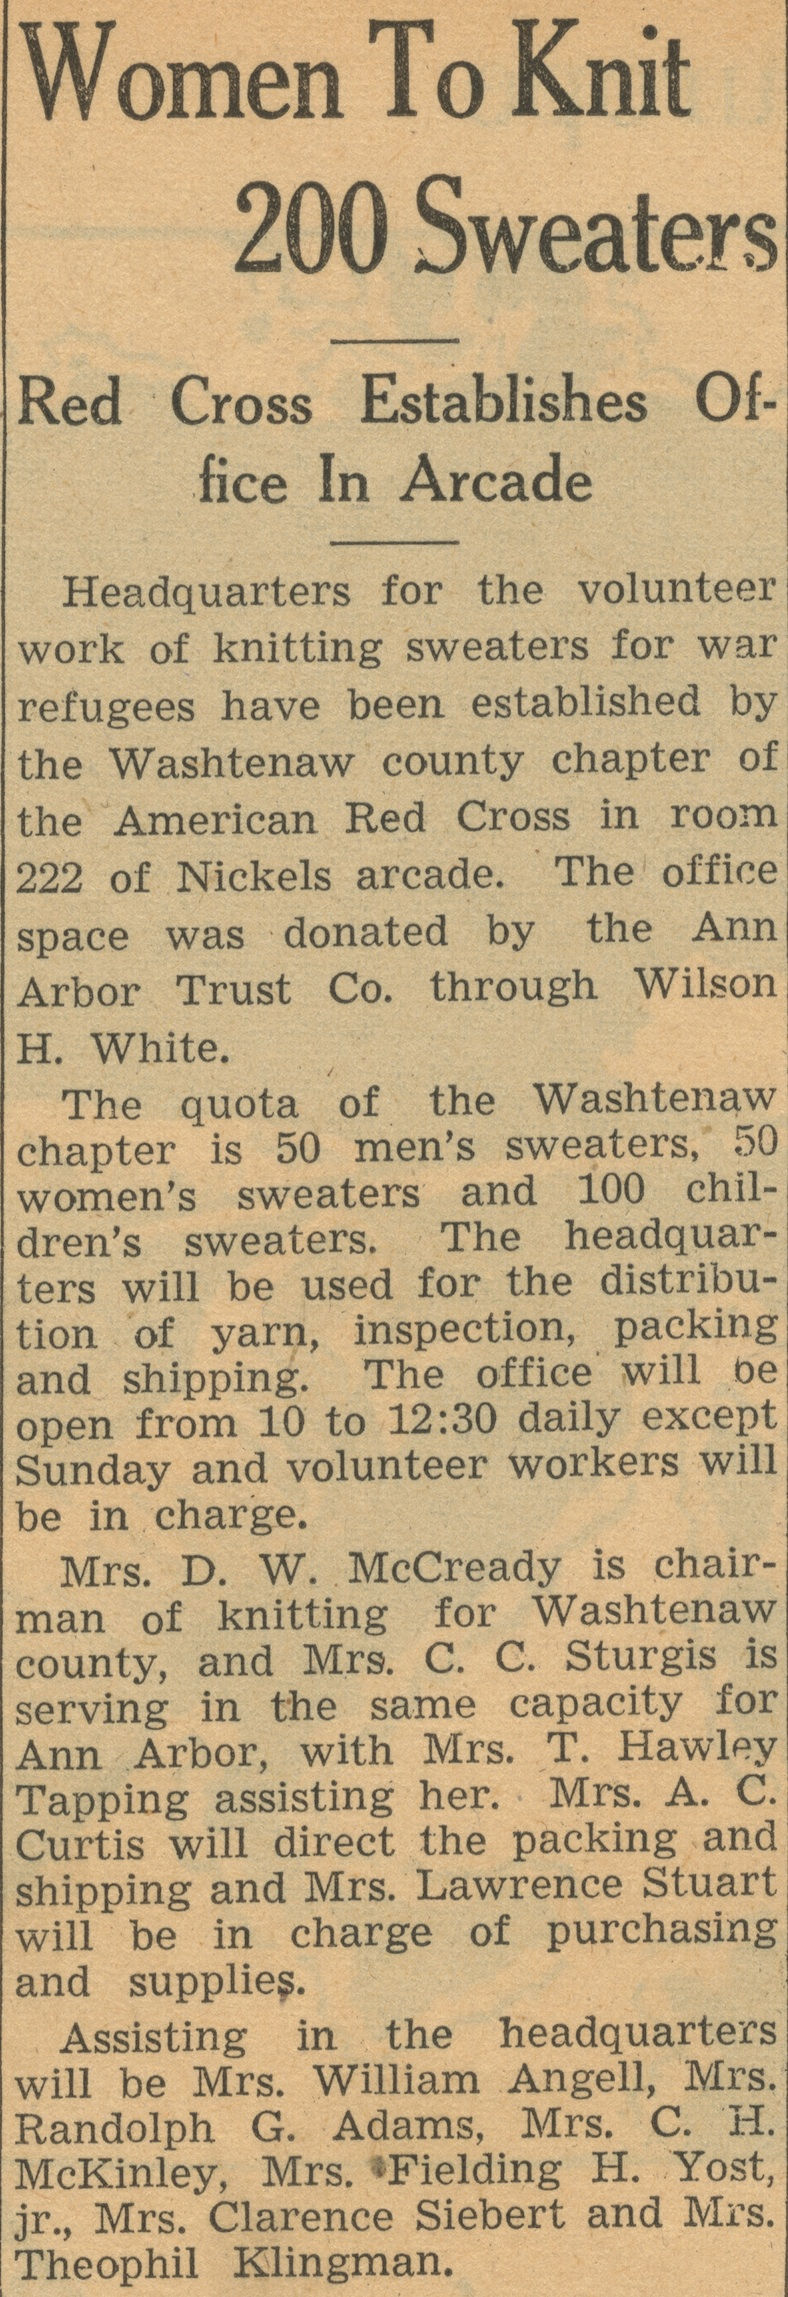 Women To Knit 200 Sweaters: Red Cross Establishes Office In Arcade image